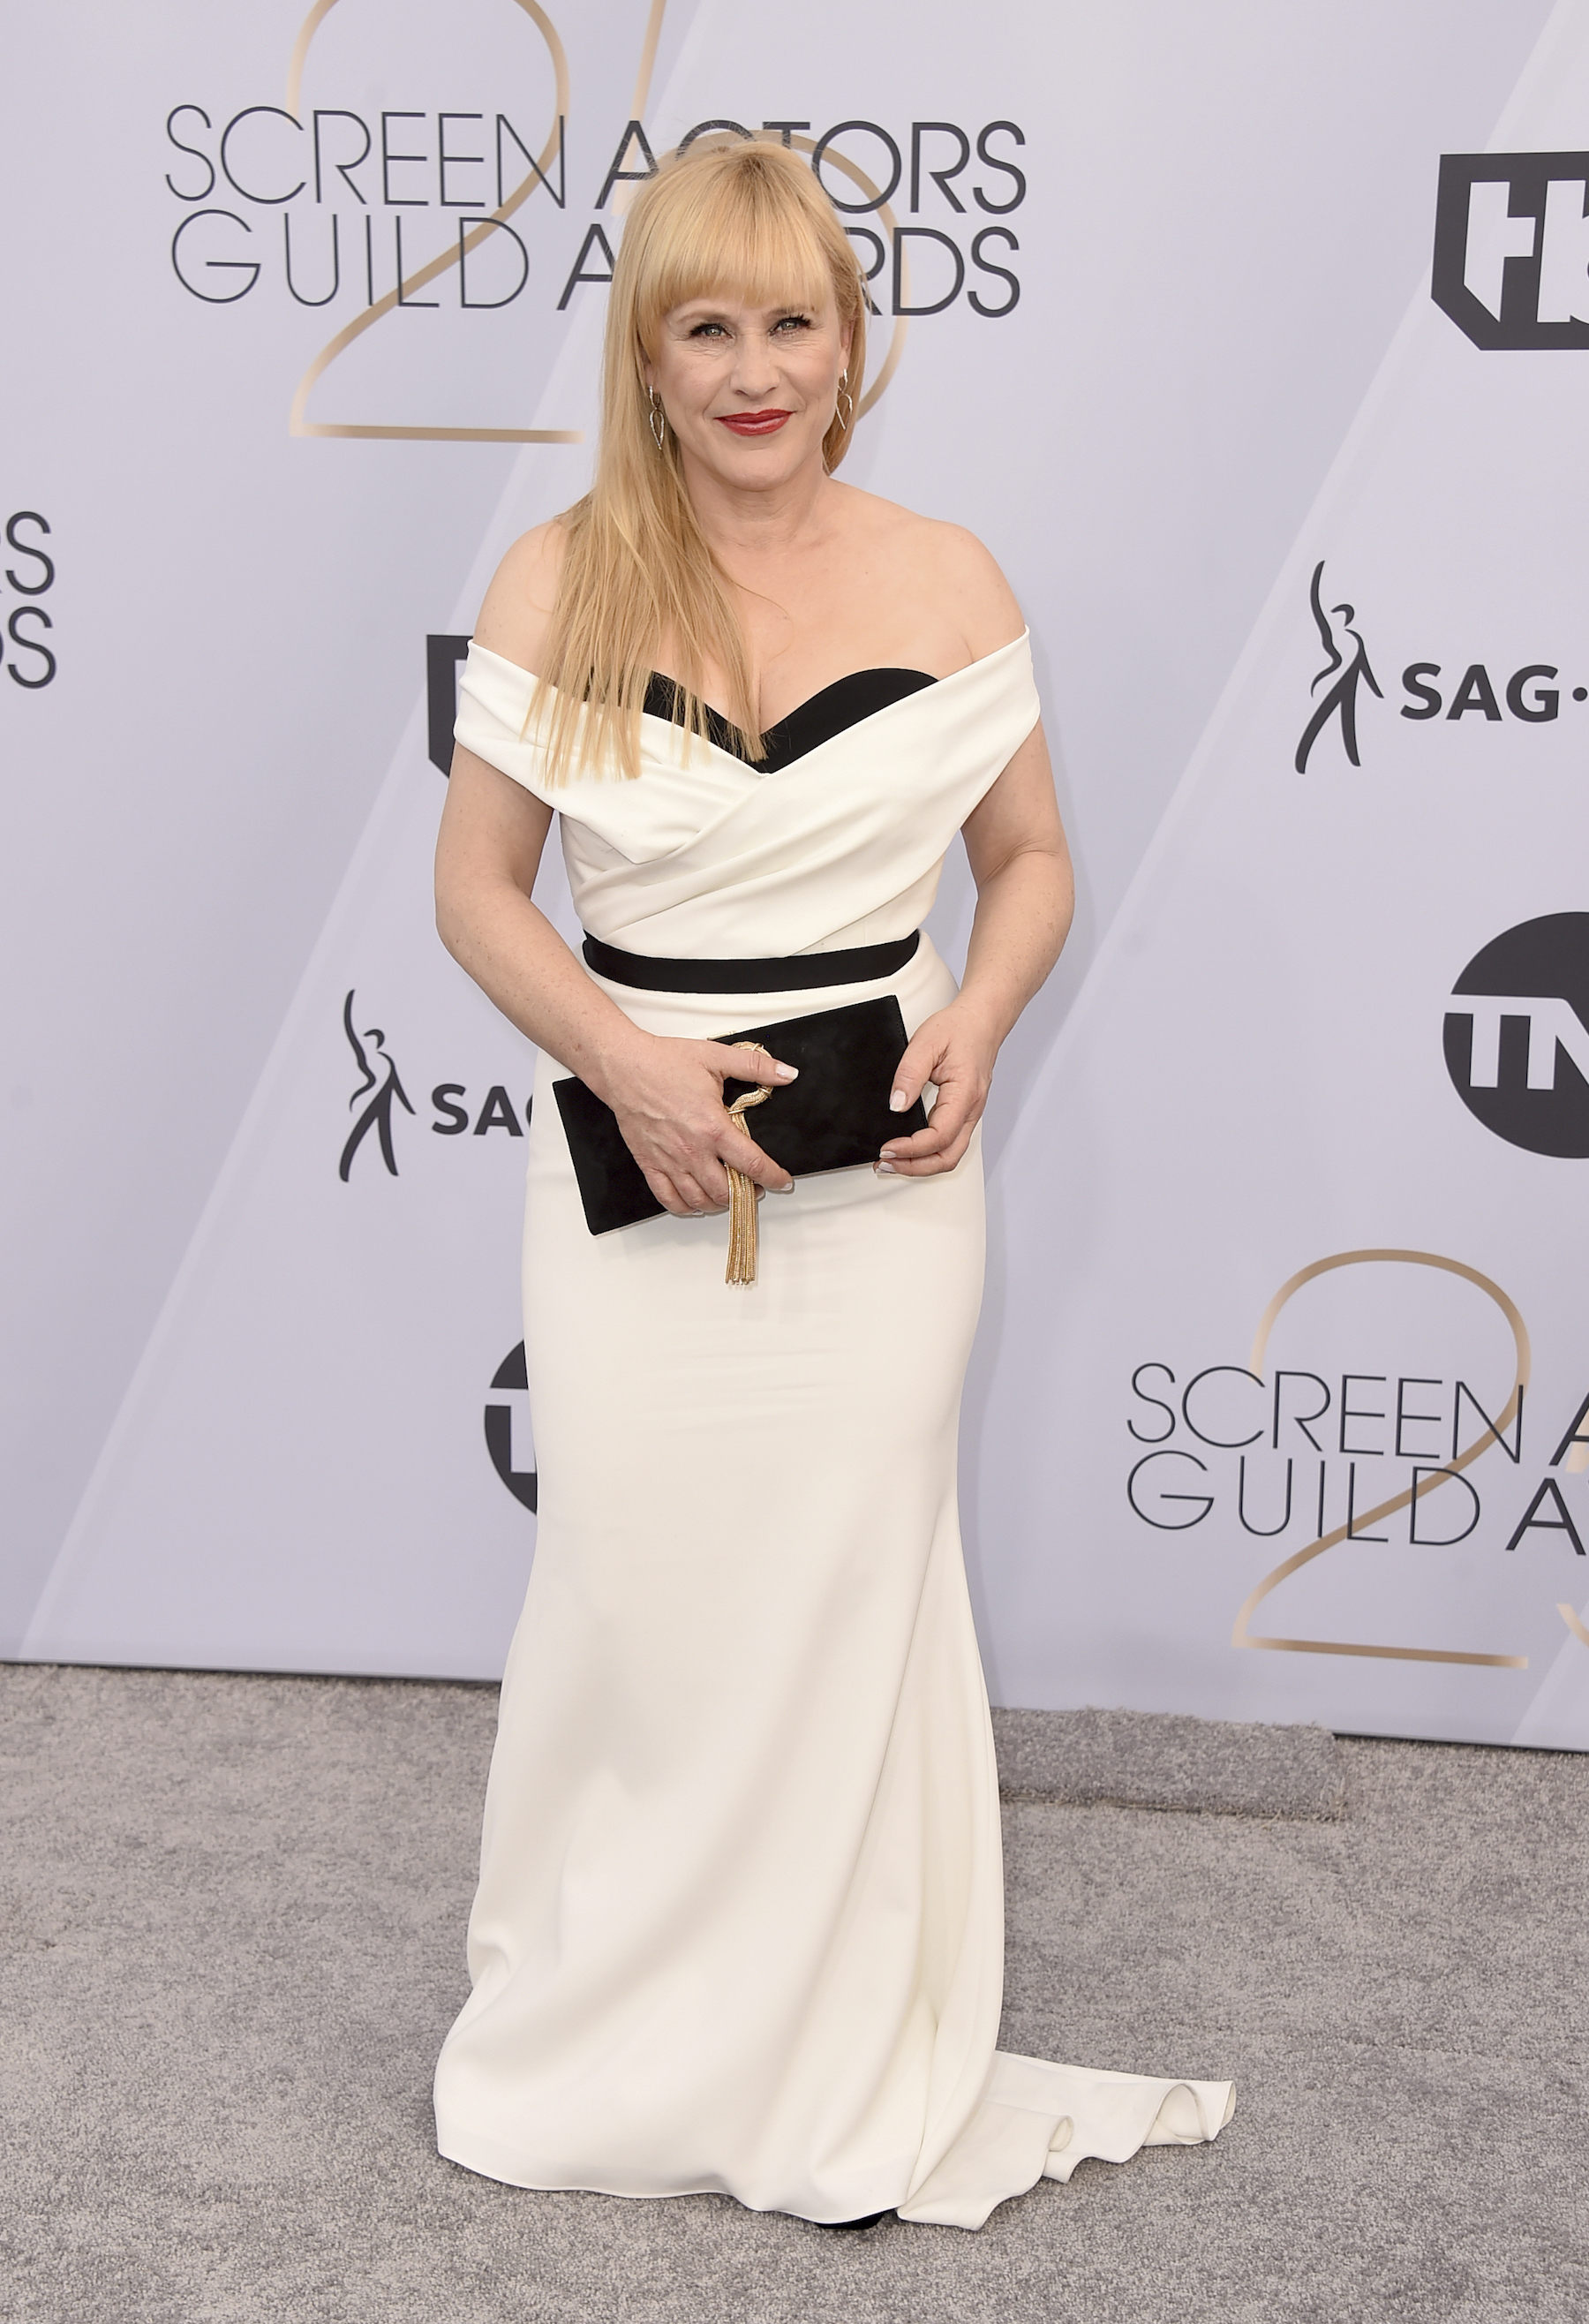 <div class='meta'><div class='origin-logo' data-origin='AP'></div><span class='caption-text' data-credit='Jordan Strauss/Invision/AP'>Patricia Arquette arrives at the 25th annual Screen Actors Guild Awards at the Shrine Auditorium & Expo Hall on Sunday, Jan. 27, 2019, in Los Angeles.</span></div>